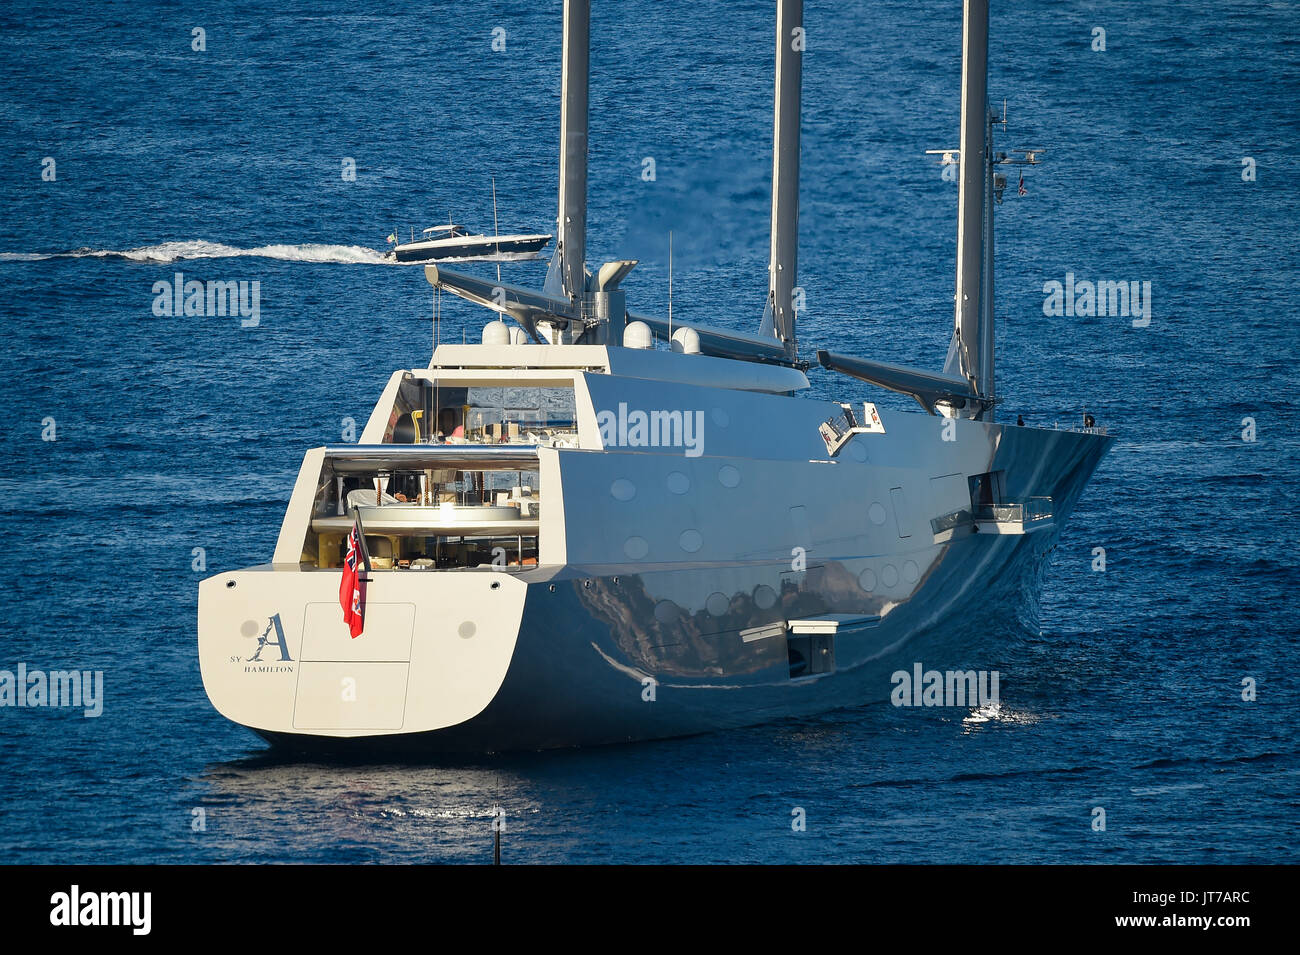 Sardinia Italy 07 August 2017 Sailing Yacht A Offshore From